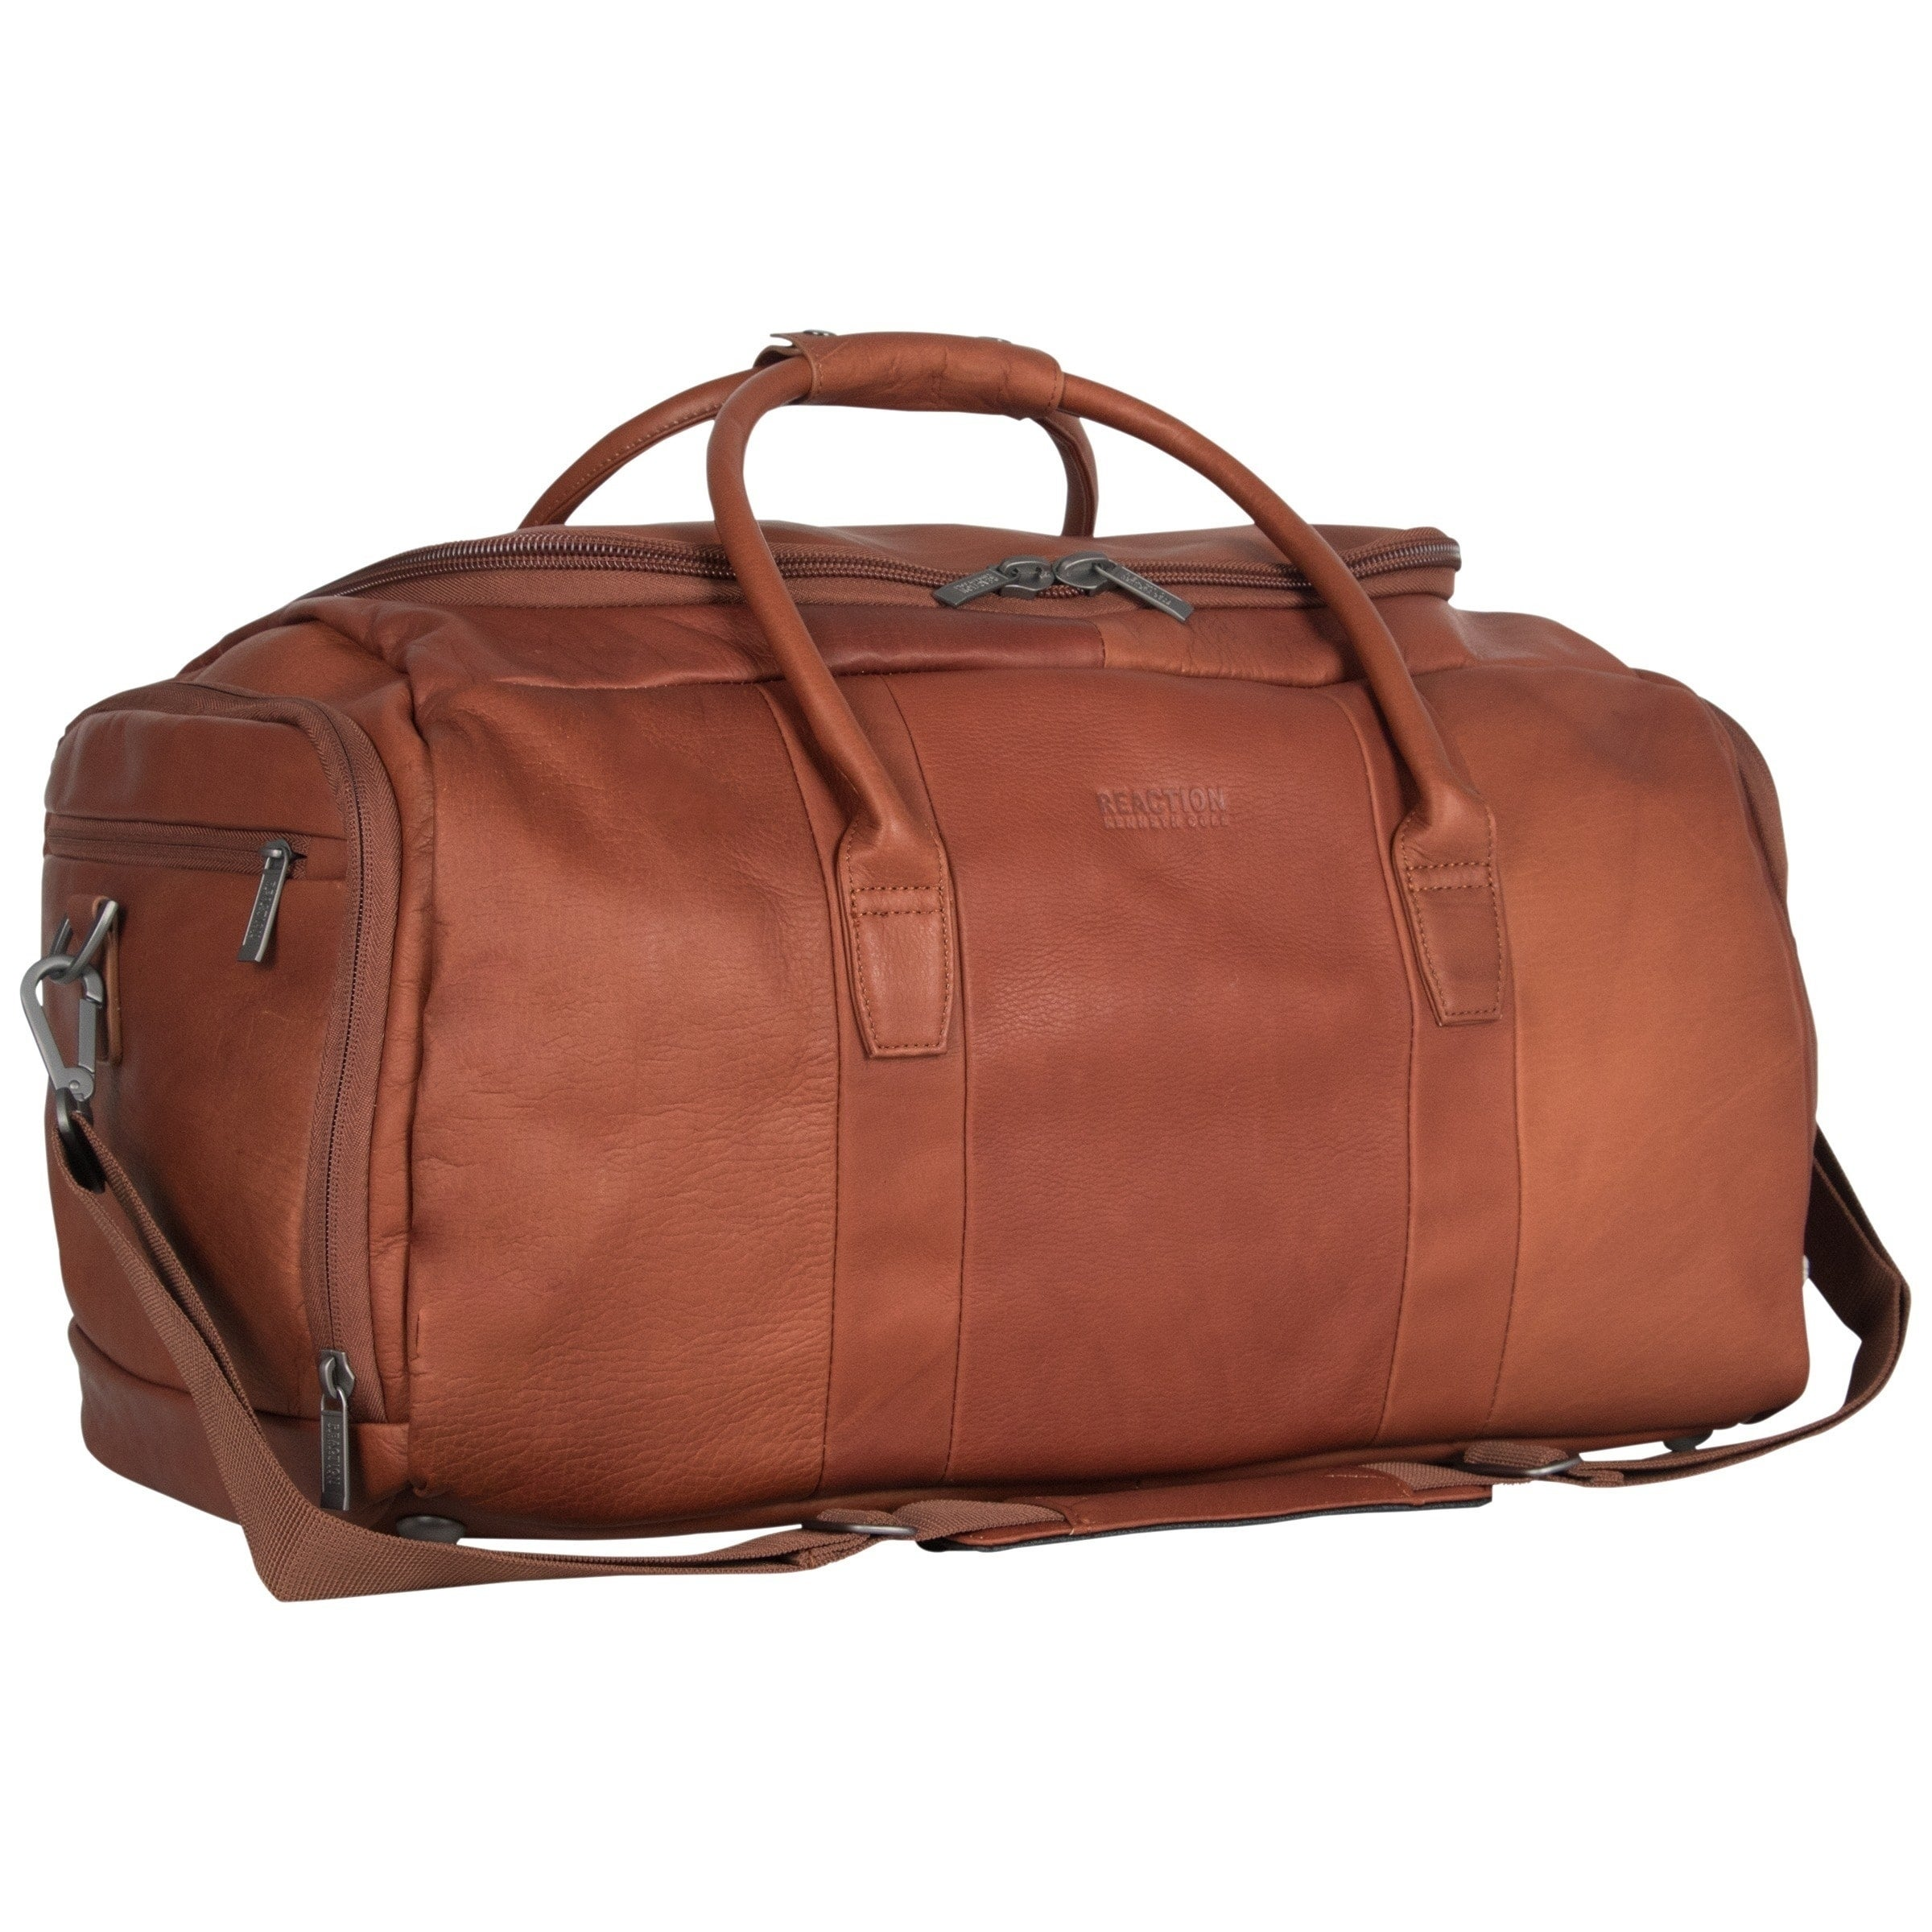 Kenneth Cole Reaction I Beg To Duff-er Full-Grain Colombian Leather Top Zip 20 Carry-On Duffel Travel Bag